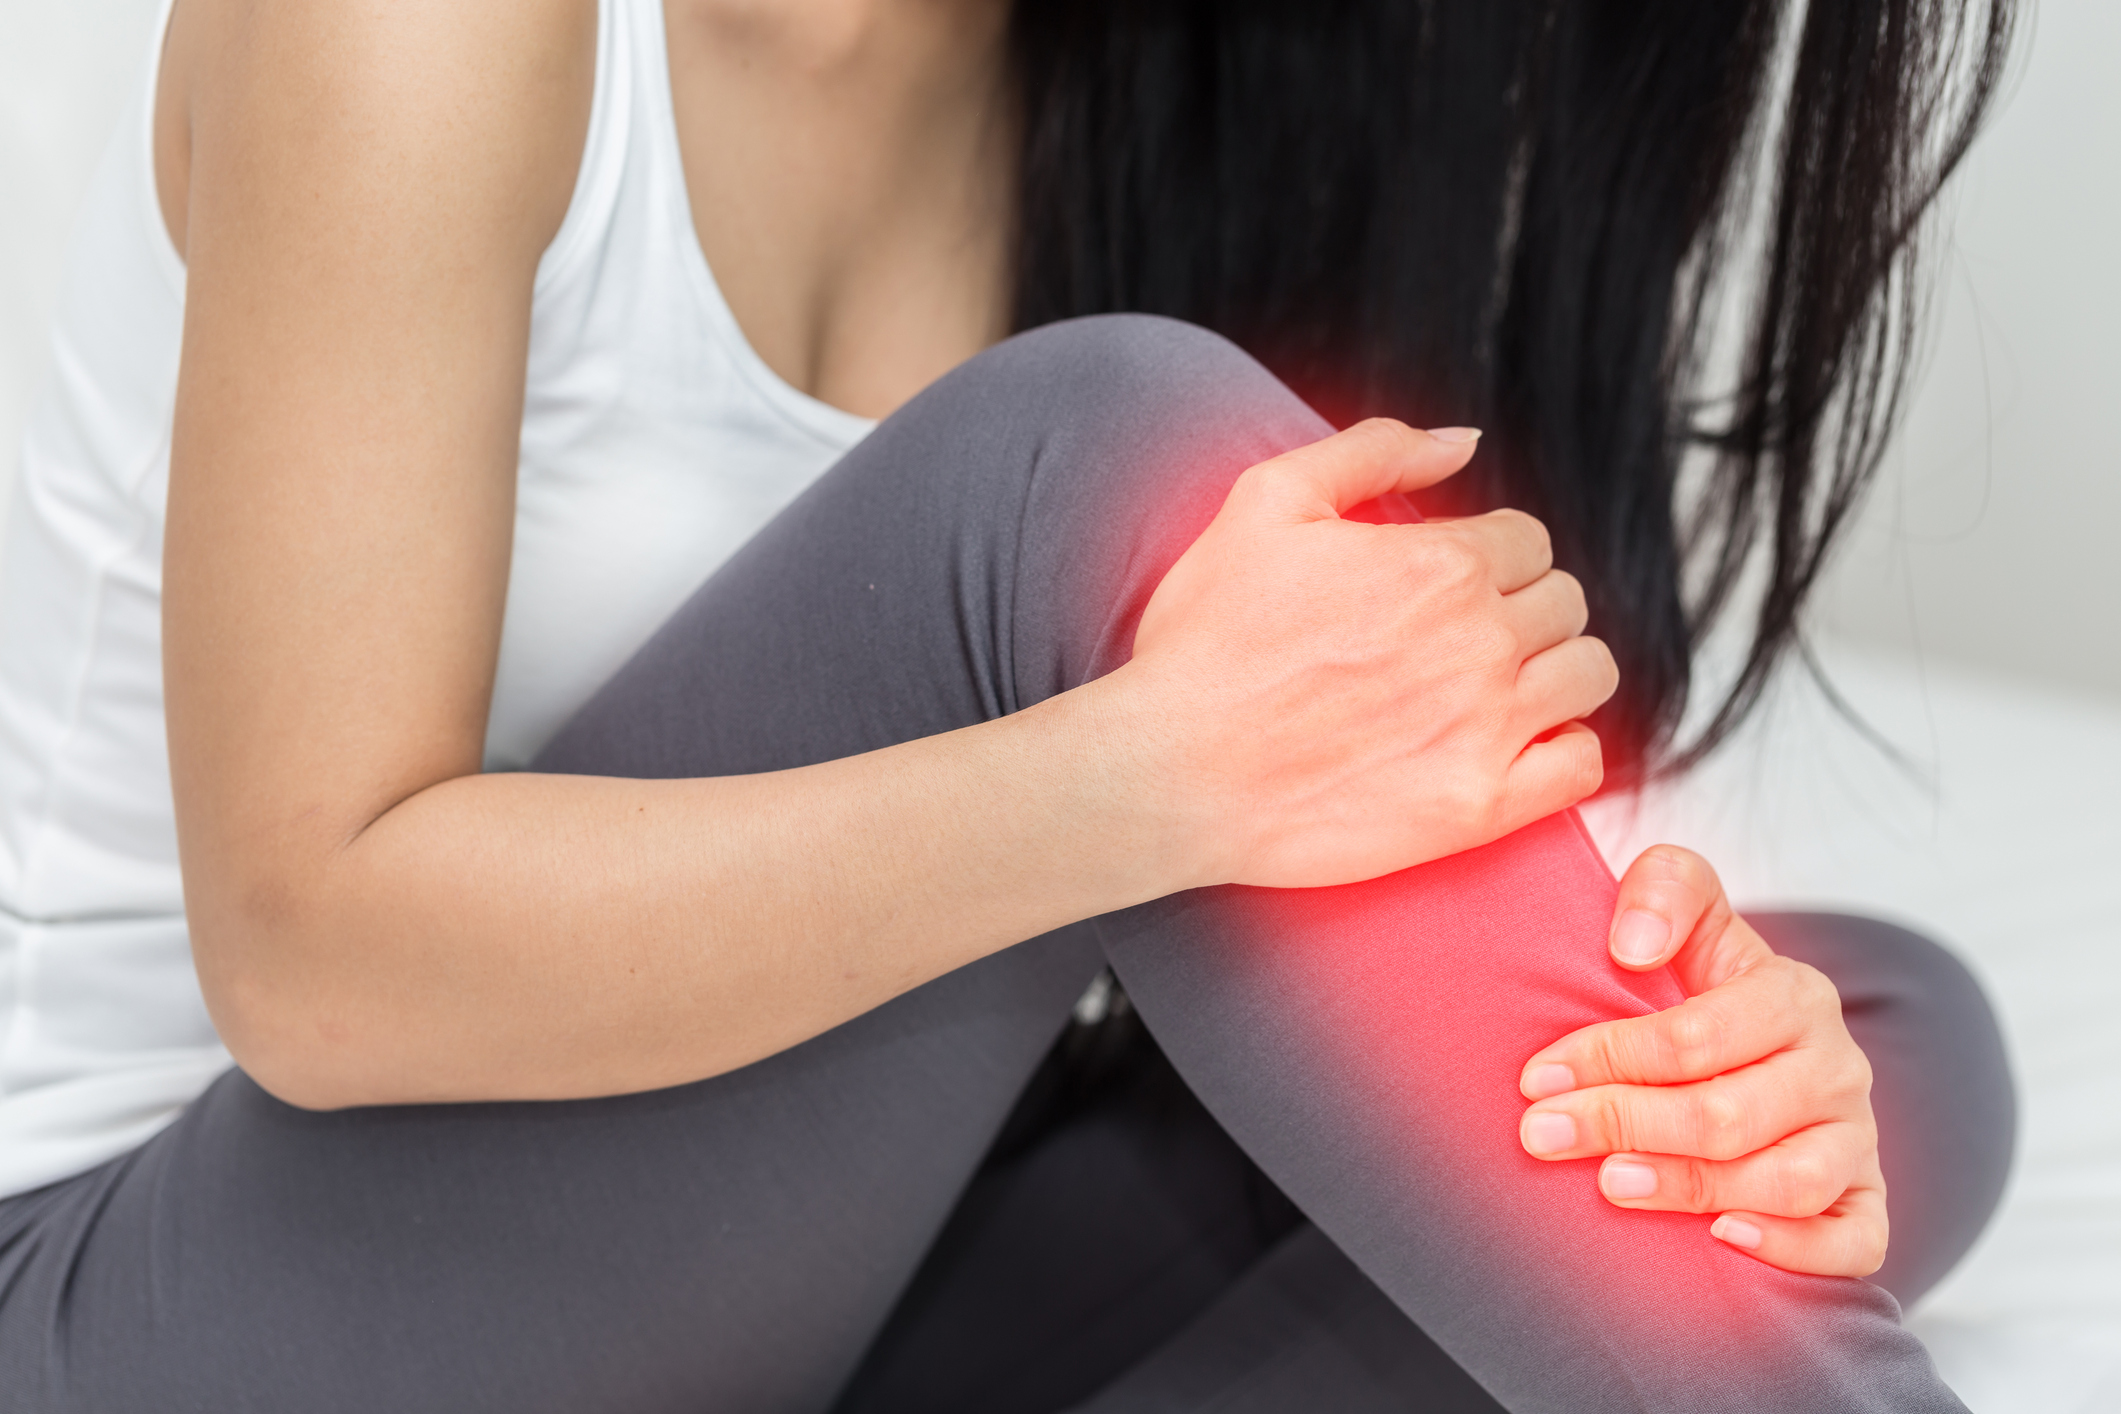 Watch 2 Moves To Treat And Prevent Shin Splints video